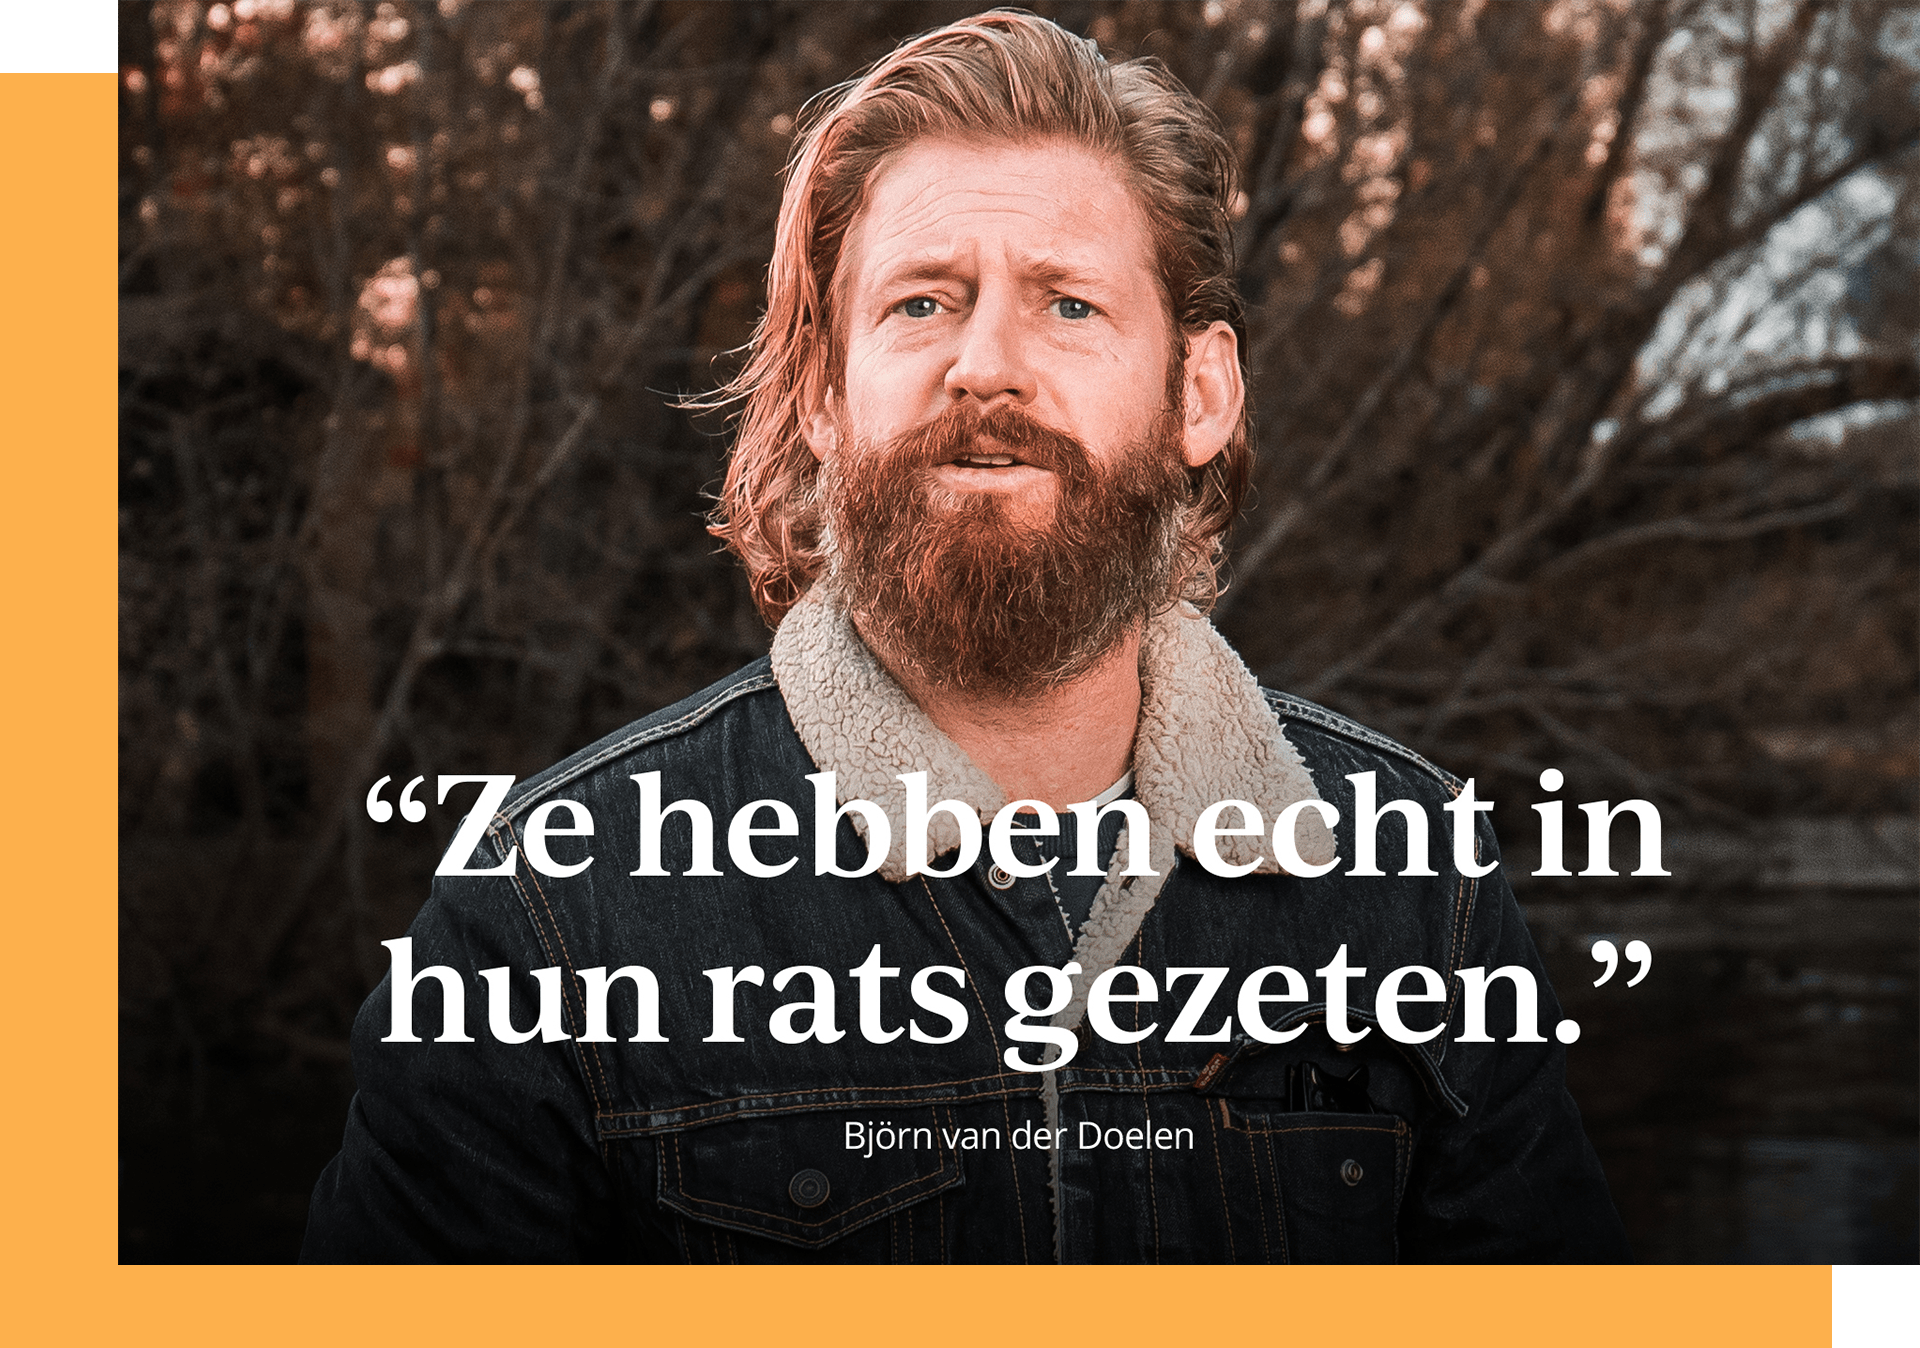 Adembenemend-quote-003